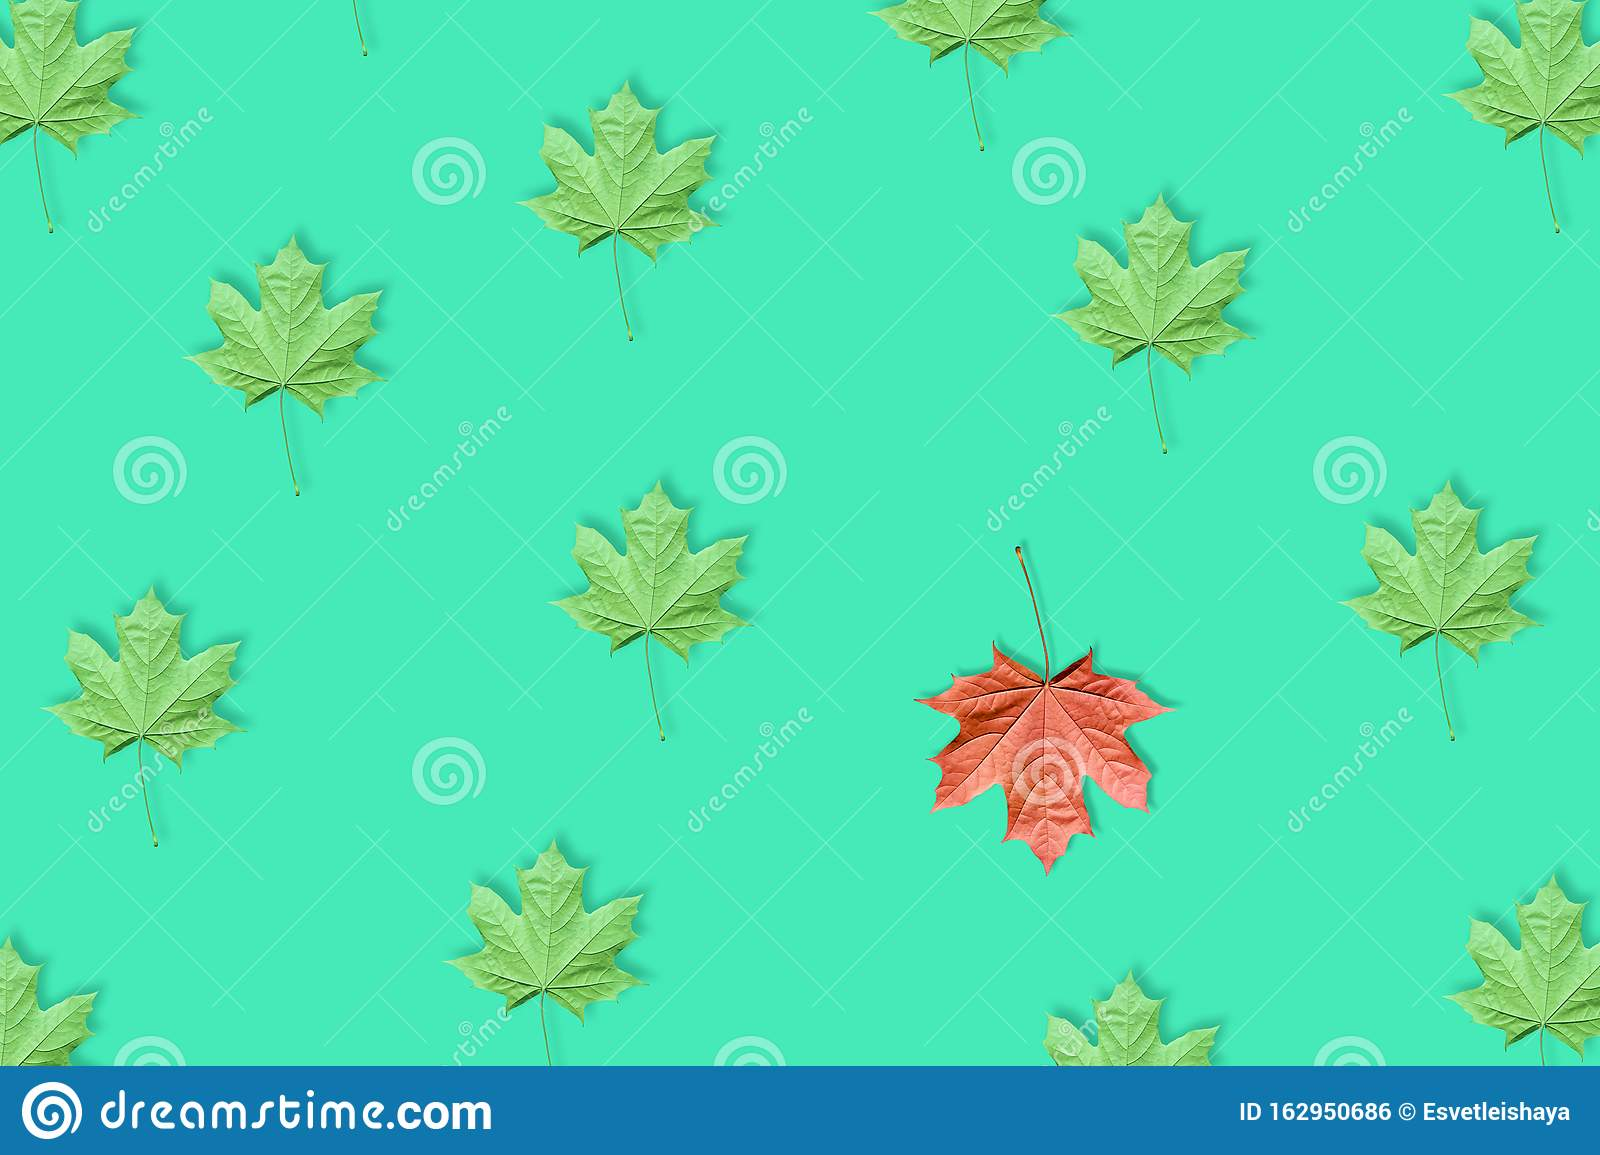 Unique Red Leaf Among Many Green Leaves Isolated On Blue Or Mint Background Stock Photo Image Of Cover November 162950686